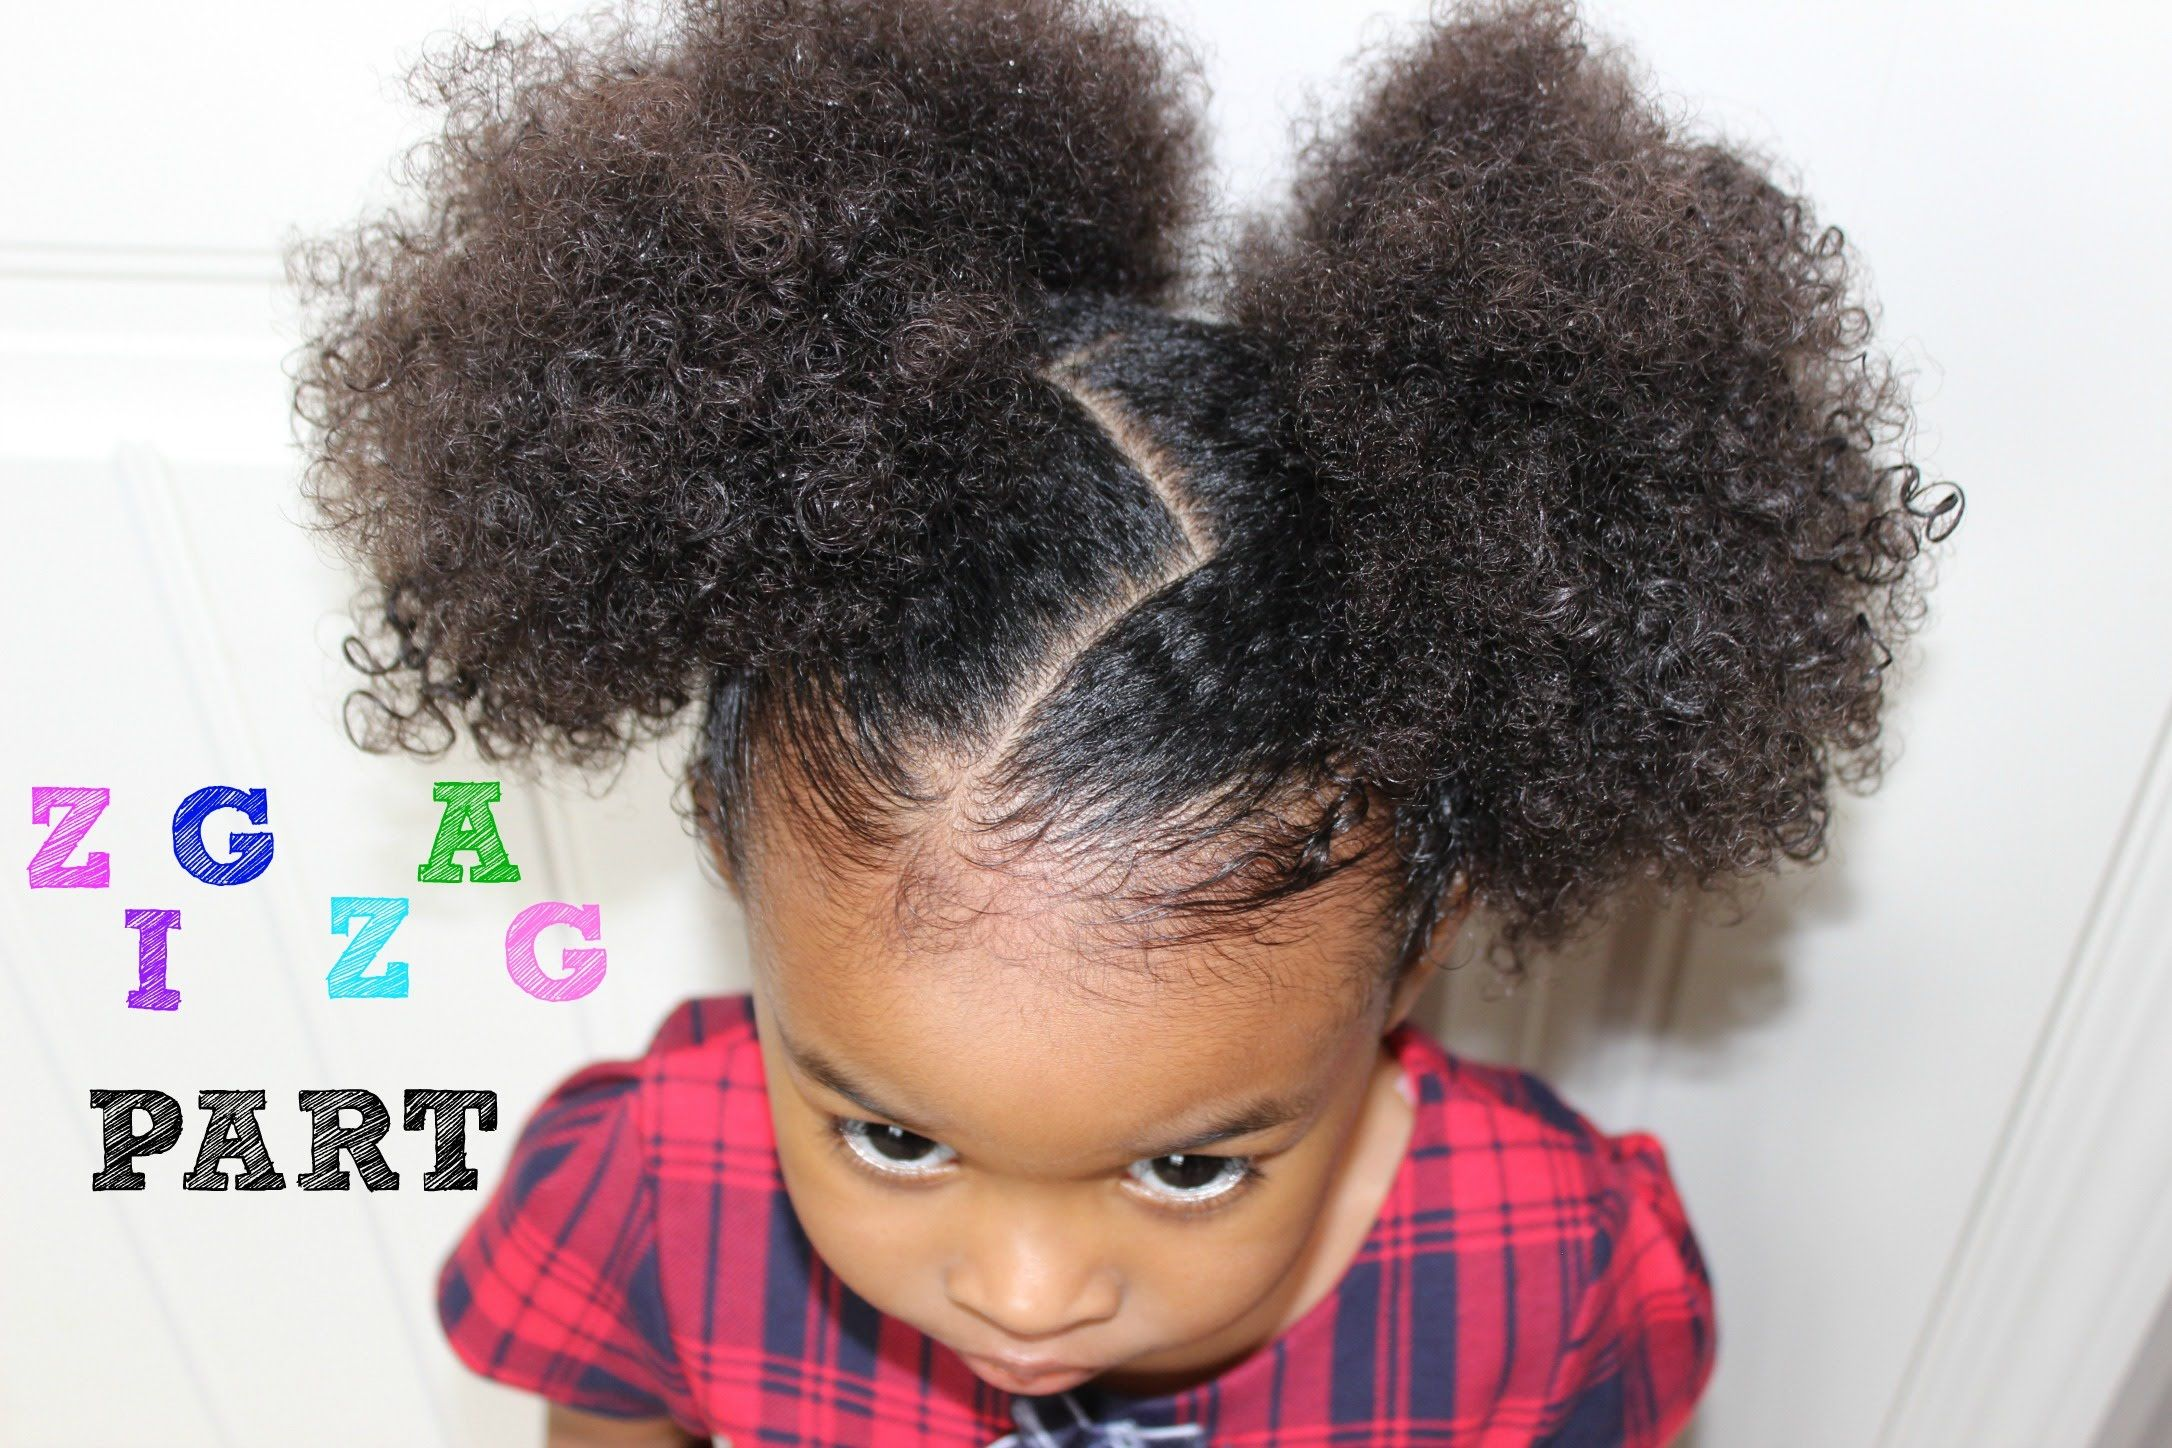 Zig zag part step by step tutorial cute girls hairstyles